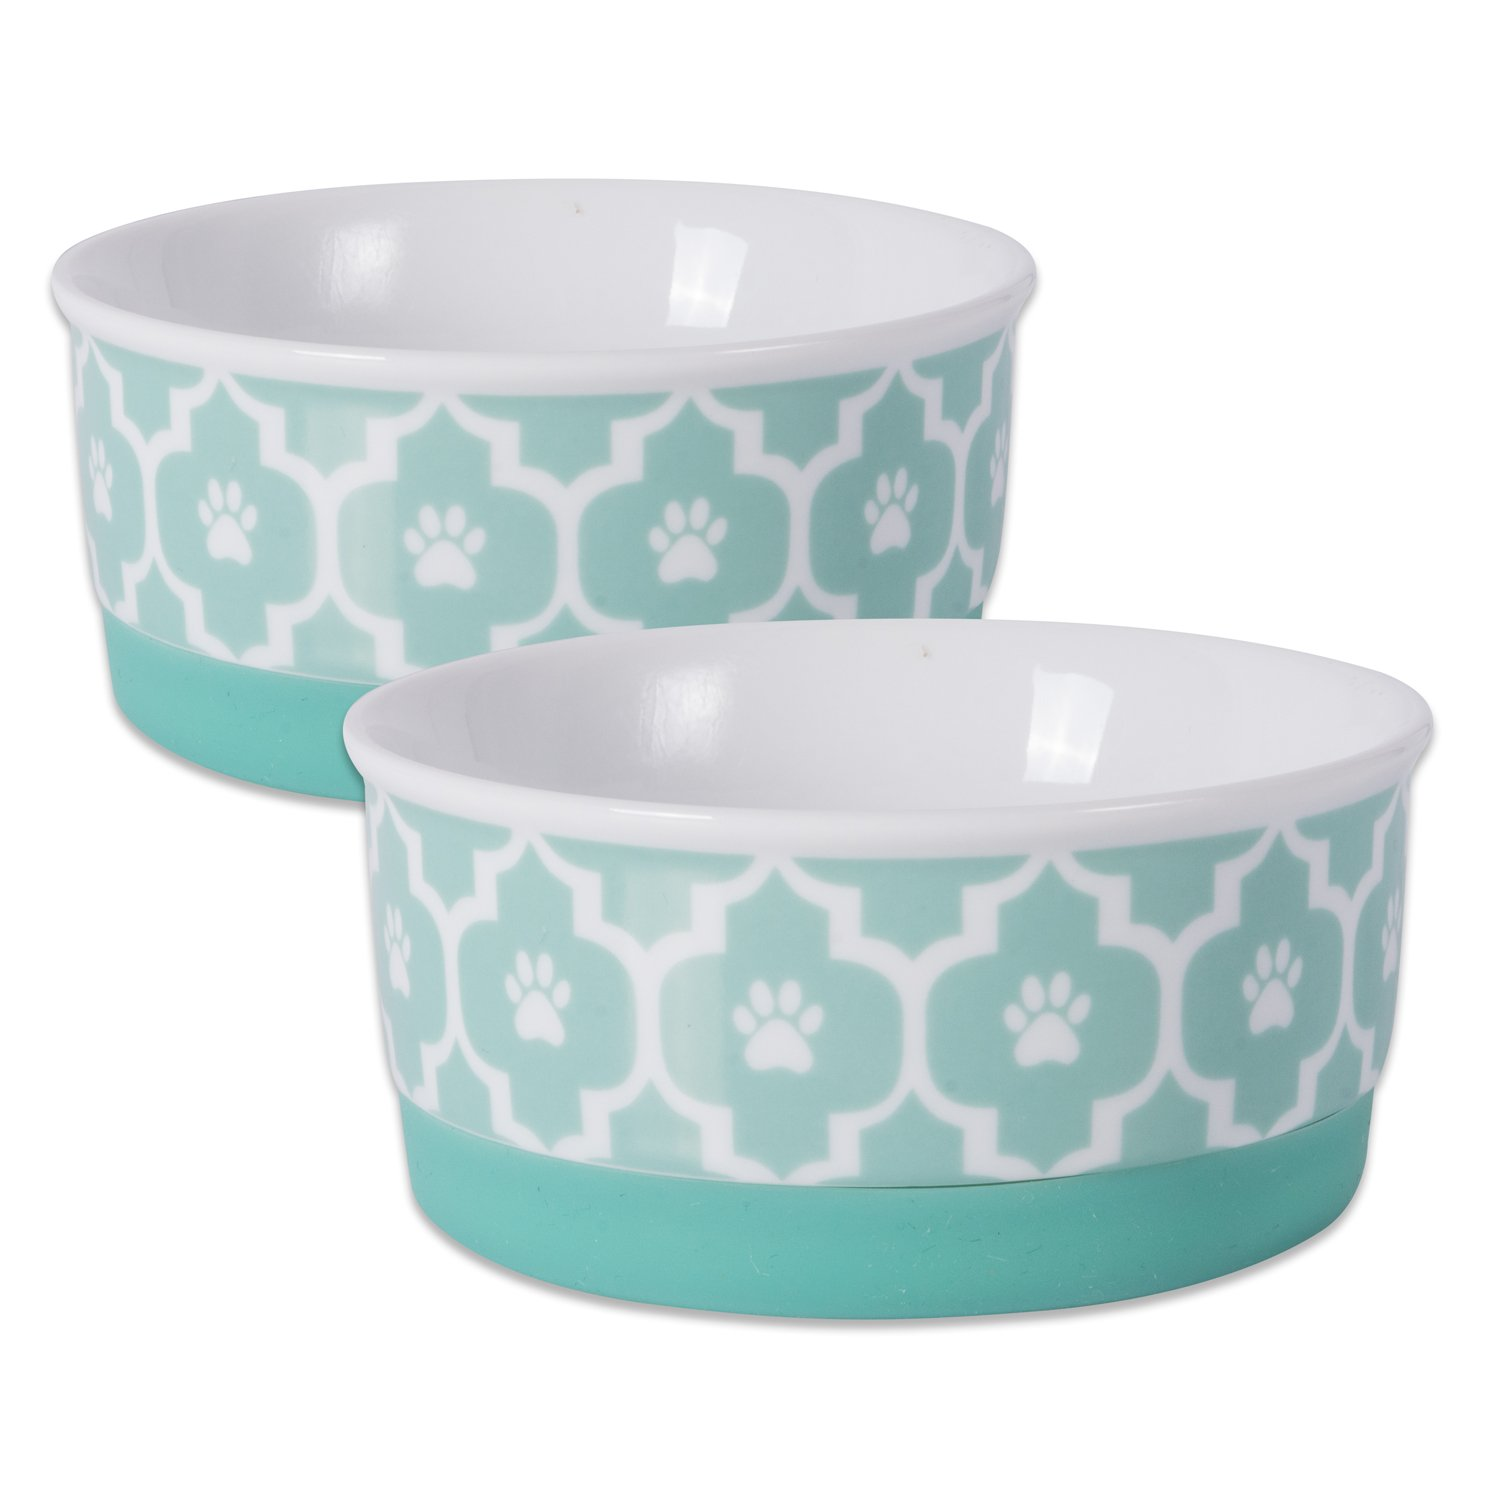 DII Bone Dry Lattice Ceramic Pet Bowl for Food & Water with Non-Skid Silicone Rim for Dogs and Cats (Small 4.25  Dia x 2 H) Aqua Set of 2